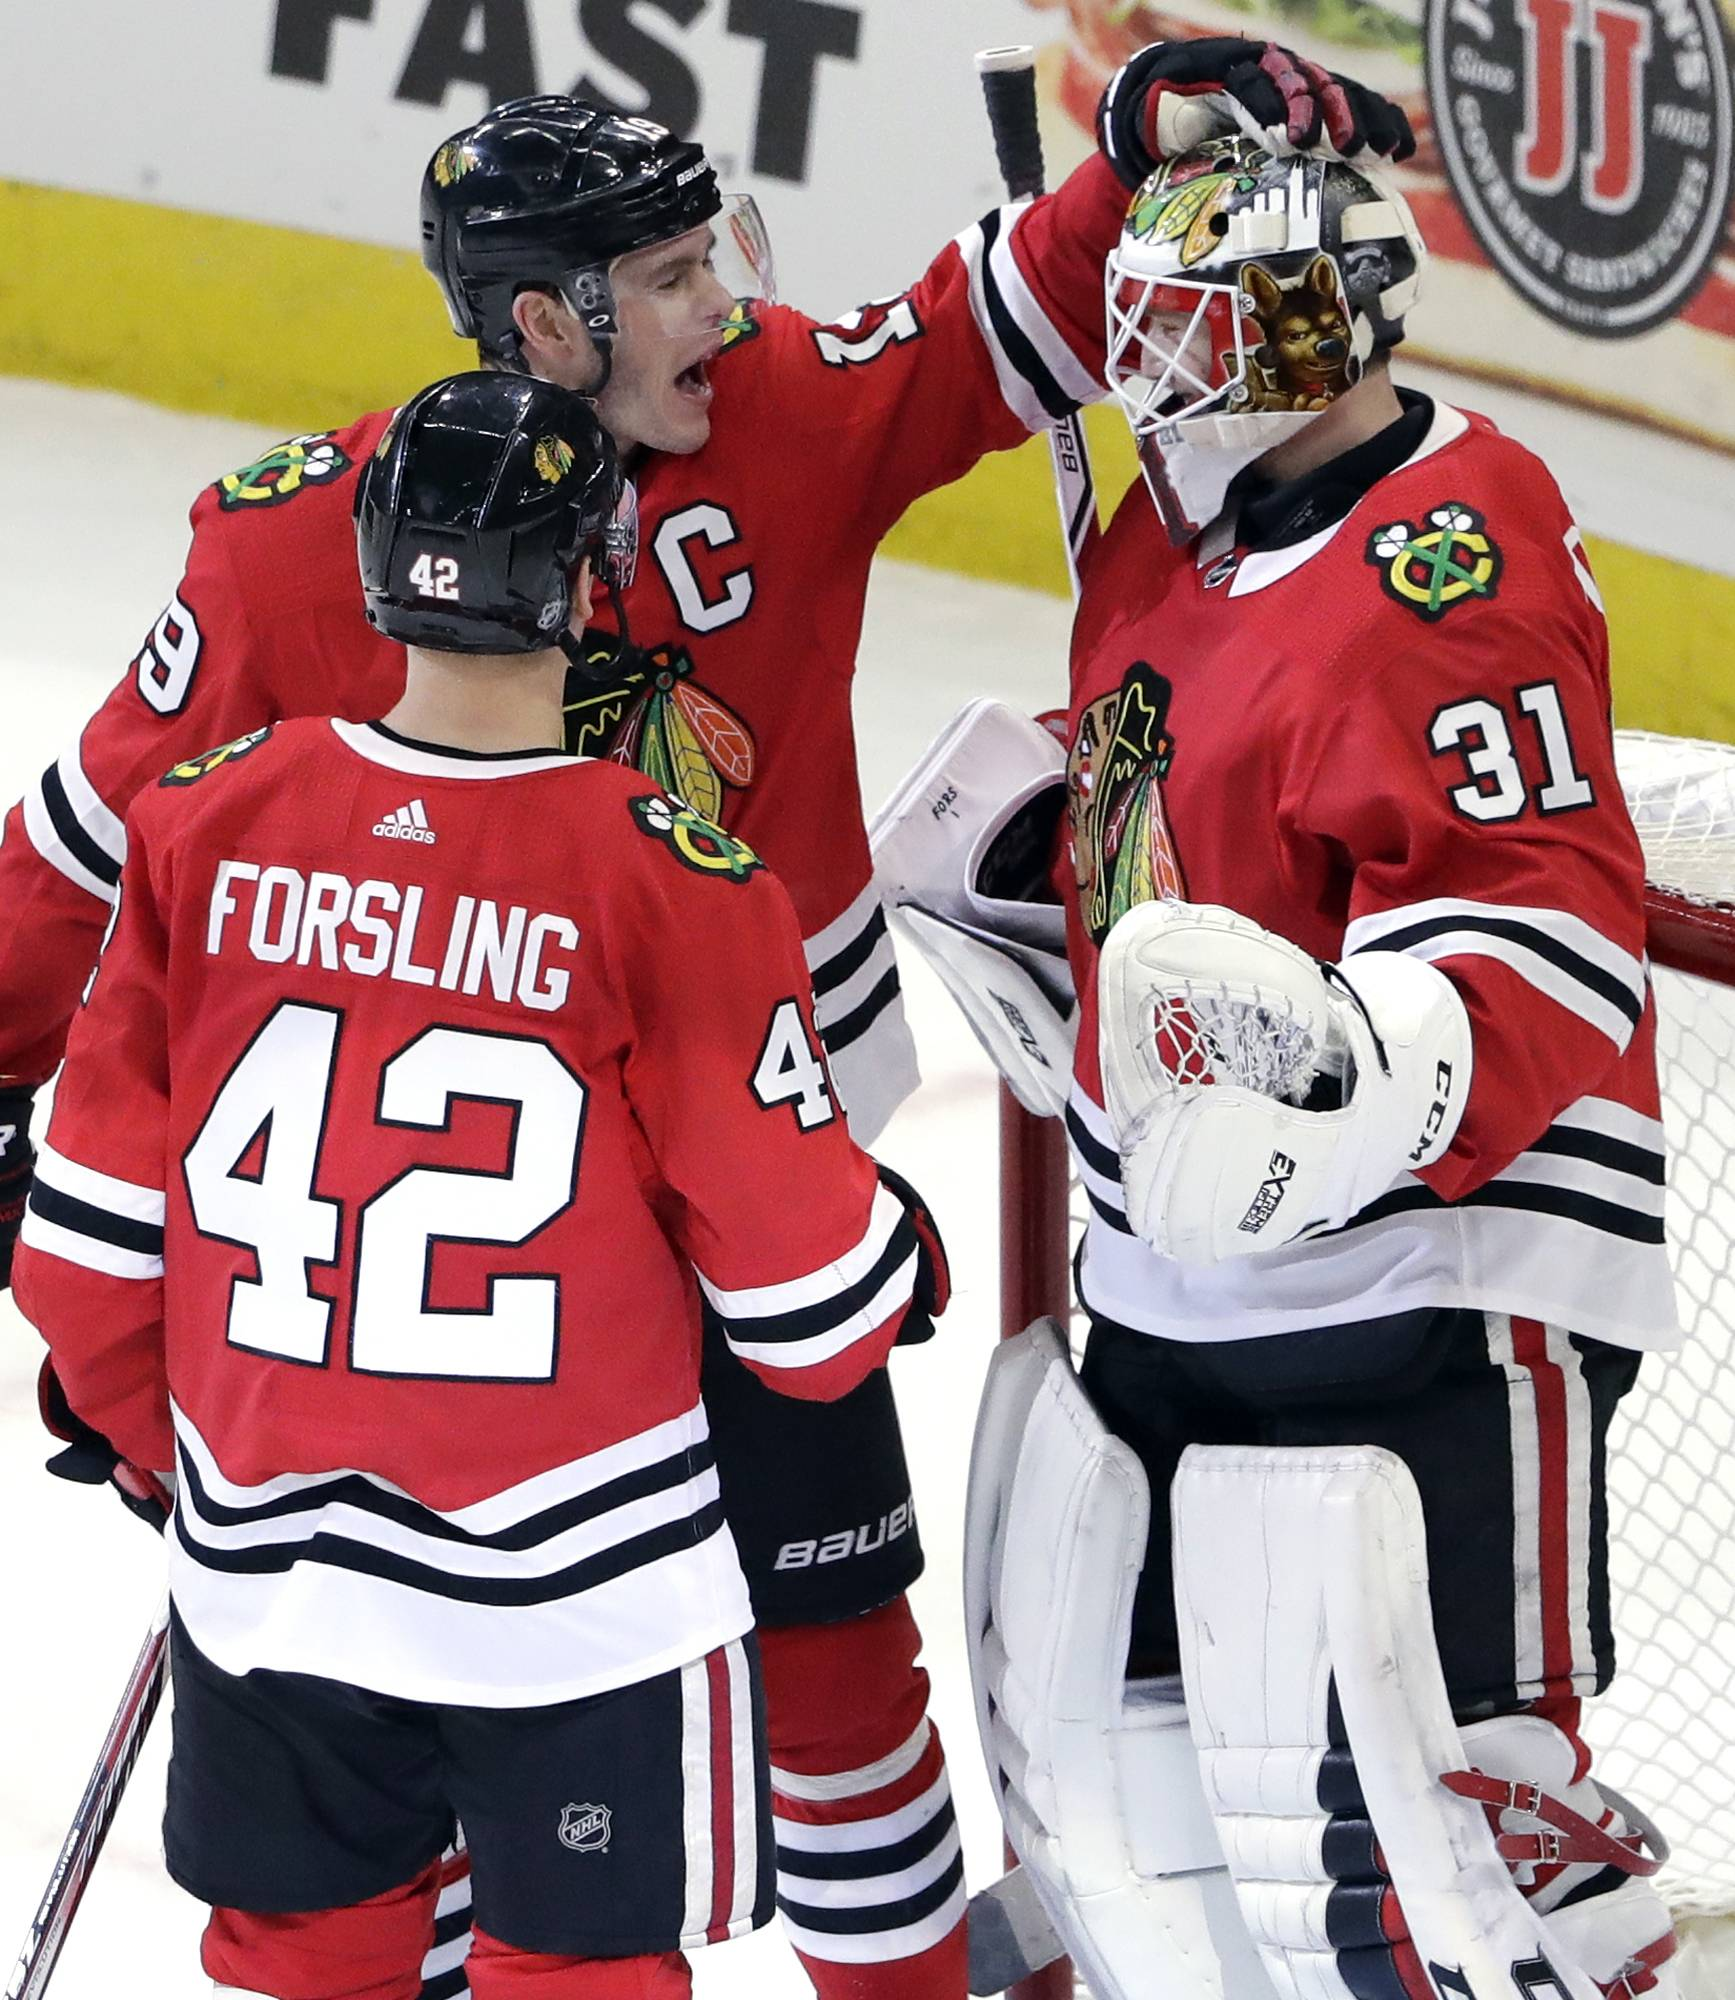 Chicago Blackhawks goalie Anton Forsberg, right, celebrates with center Jonathan Toews and defenseman Gustav Forsling (42) after they defeated the Edmonton Oilers in an NHL hockey game Sunday, Jan. 7, 2018, in Chicago.